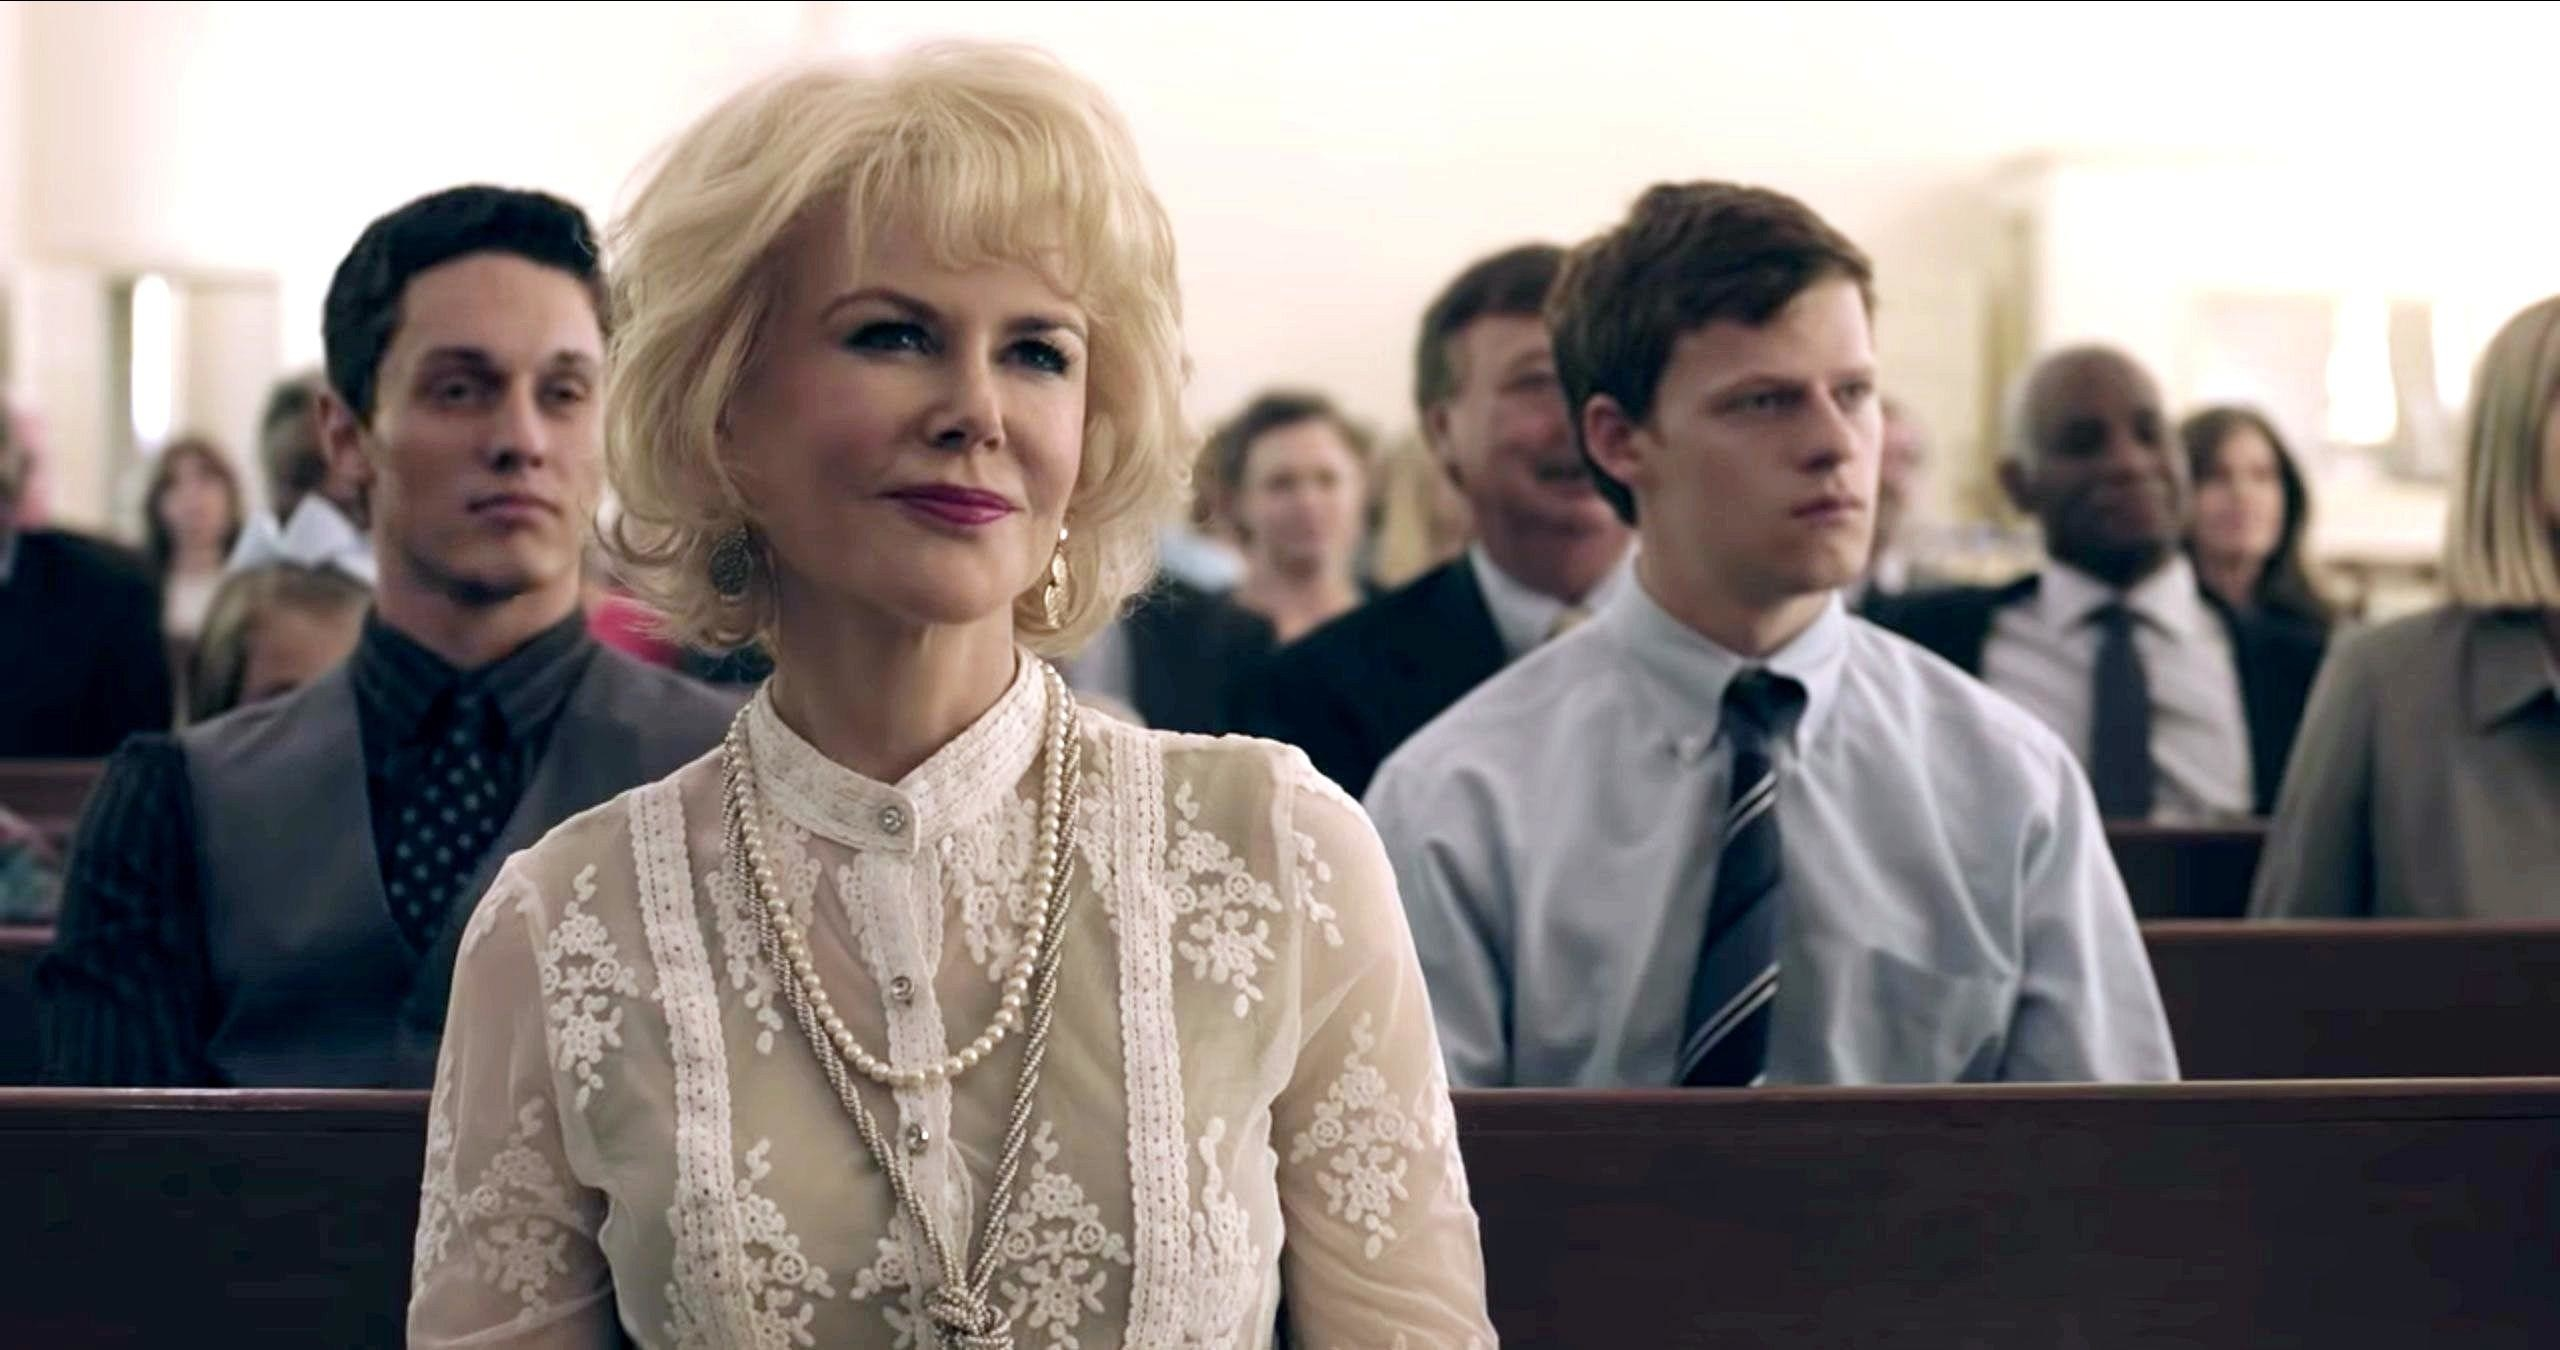 Lucas Hedges as Jared Eamons and Nicole Kidman as his mother at church